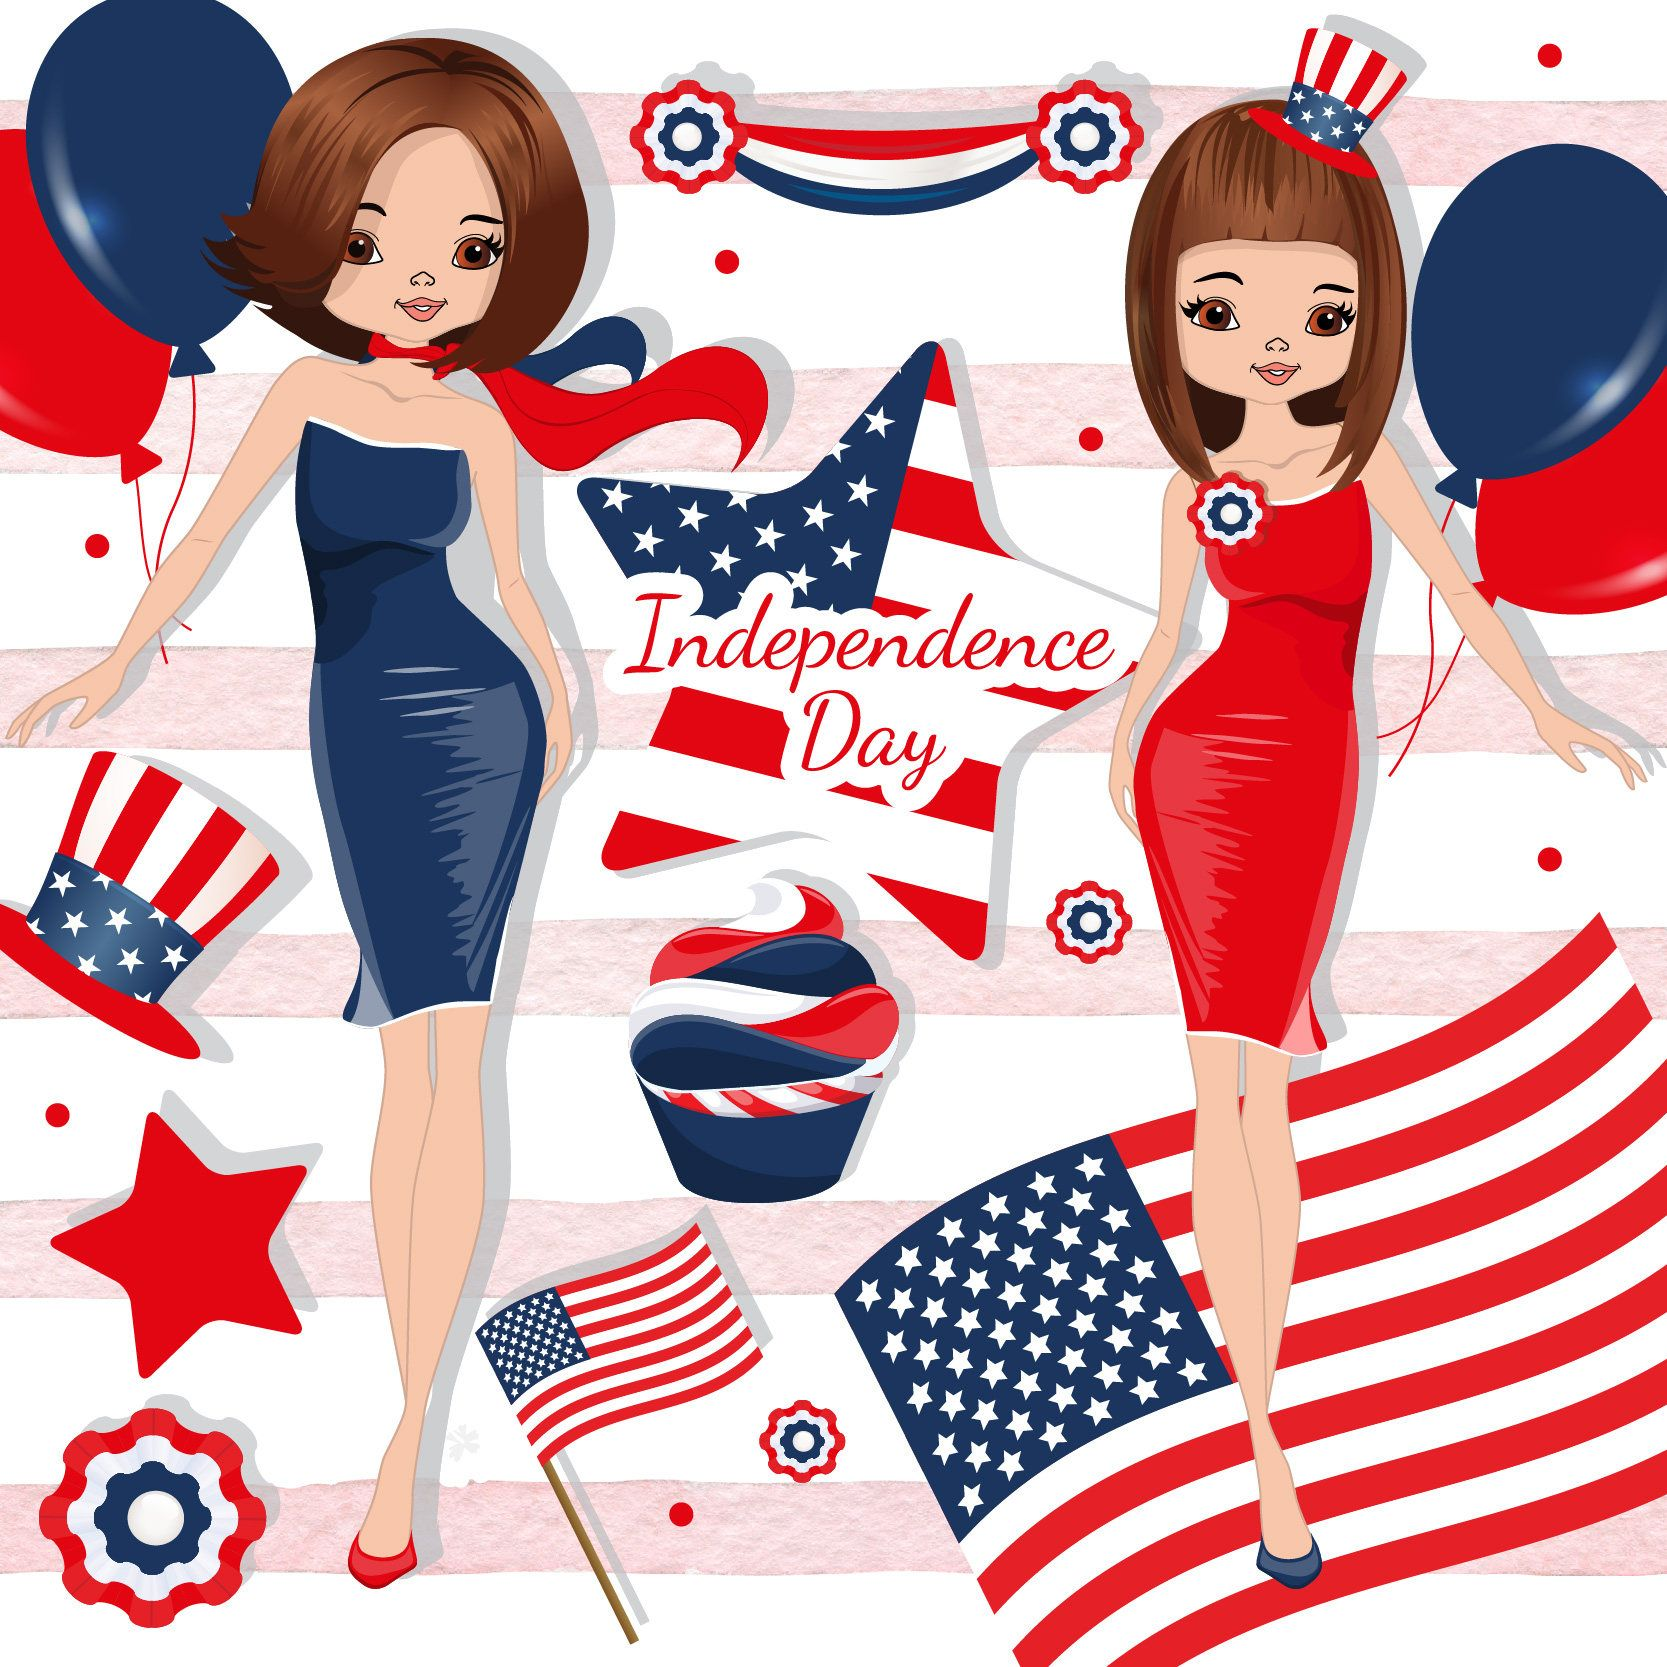 Independence day clipart, 4th of July clipart, Patriotic.